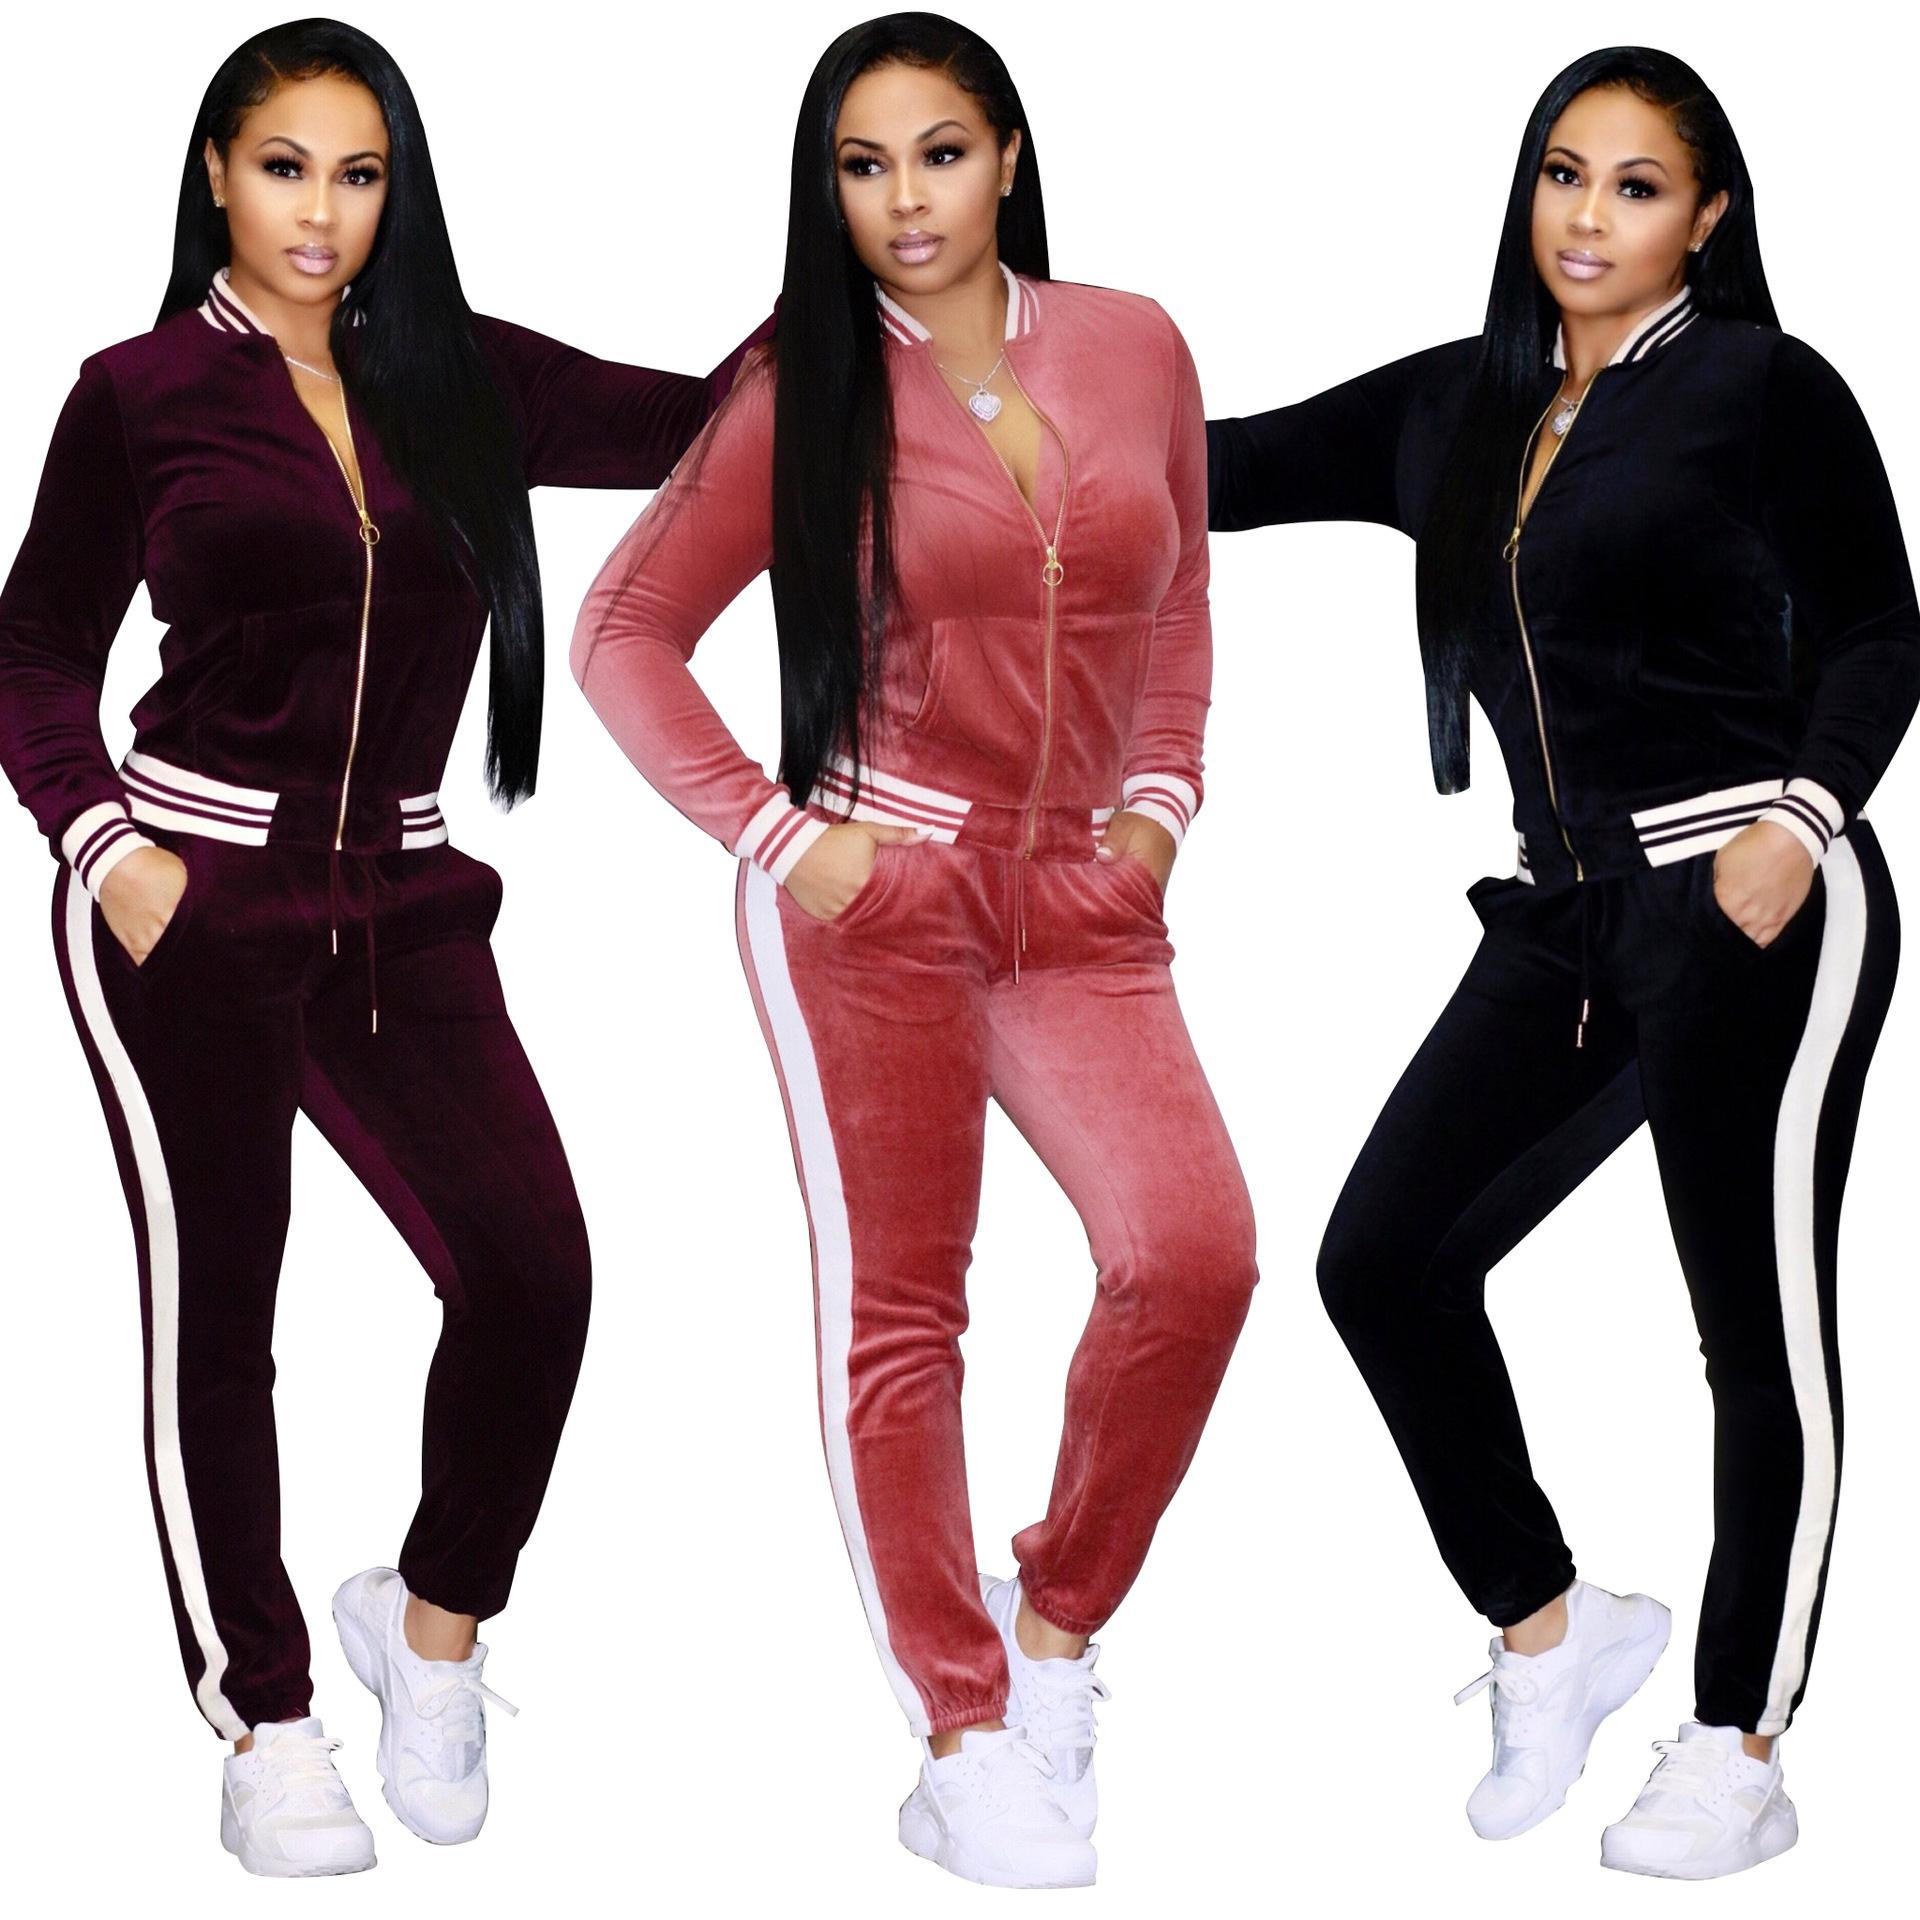 2020 Plus Size Velour Tracksuits Women Warm Pocket Casual Side Ribbons Zipper Long Sleeve Pencil Pant Outfits Sports Two Piece Sets From Hengytrade 22 12 Dhgate Com